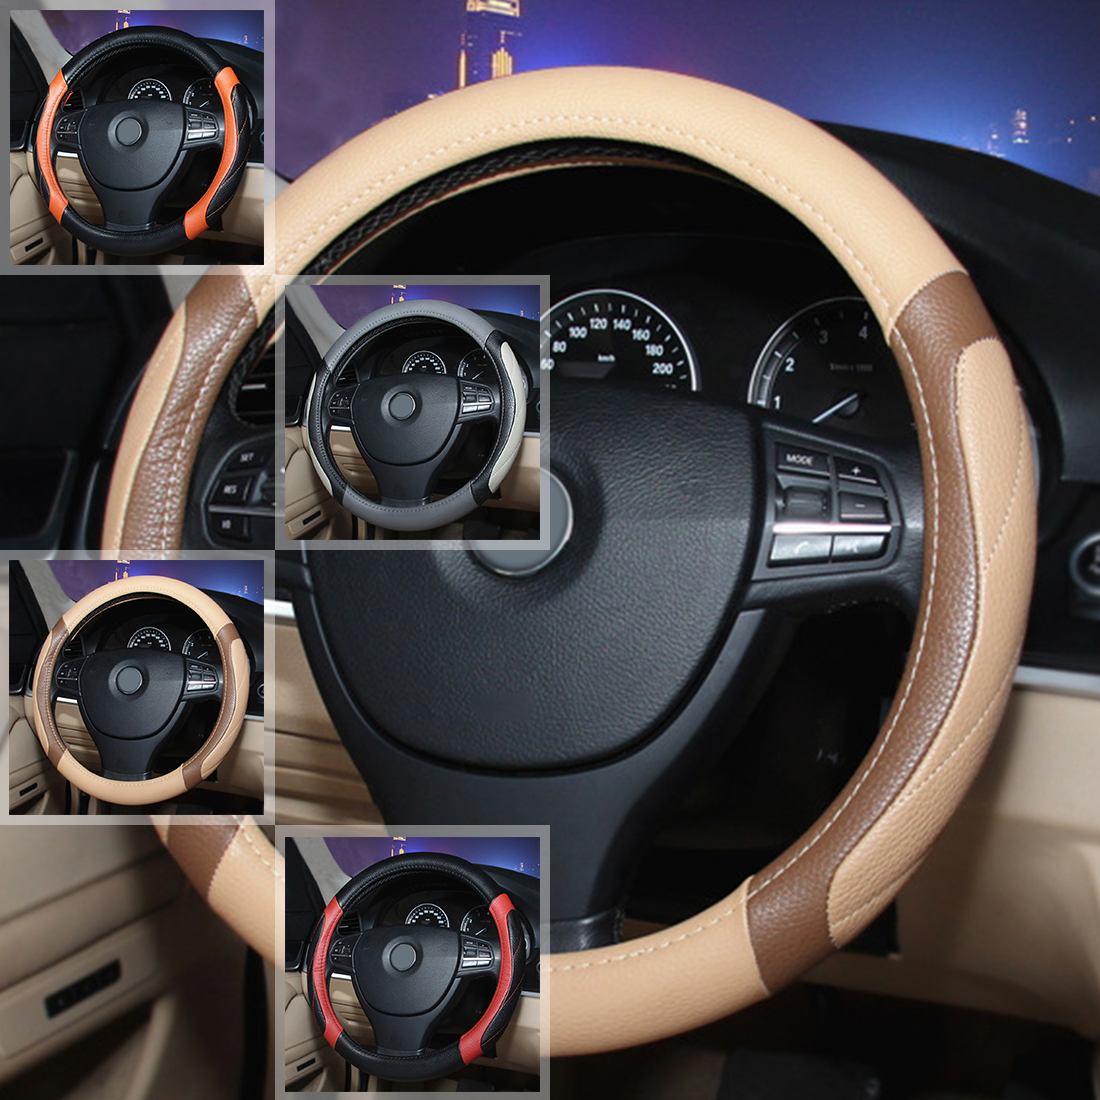 Dewtreetali Car Steering Wheel Cover 38cm Breathable Leather Sports Steering-wheel Protector Car Styling for Audi BMW VW Nissan